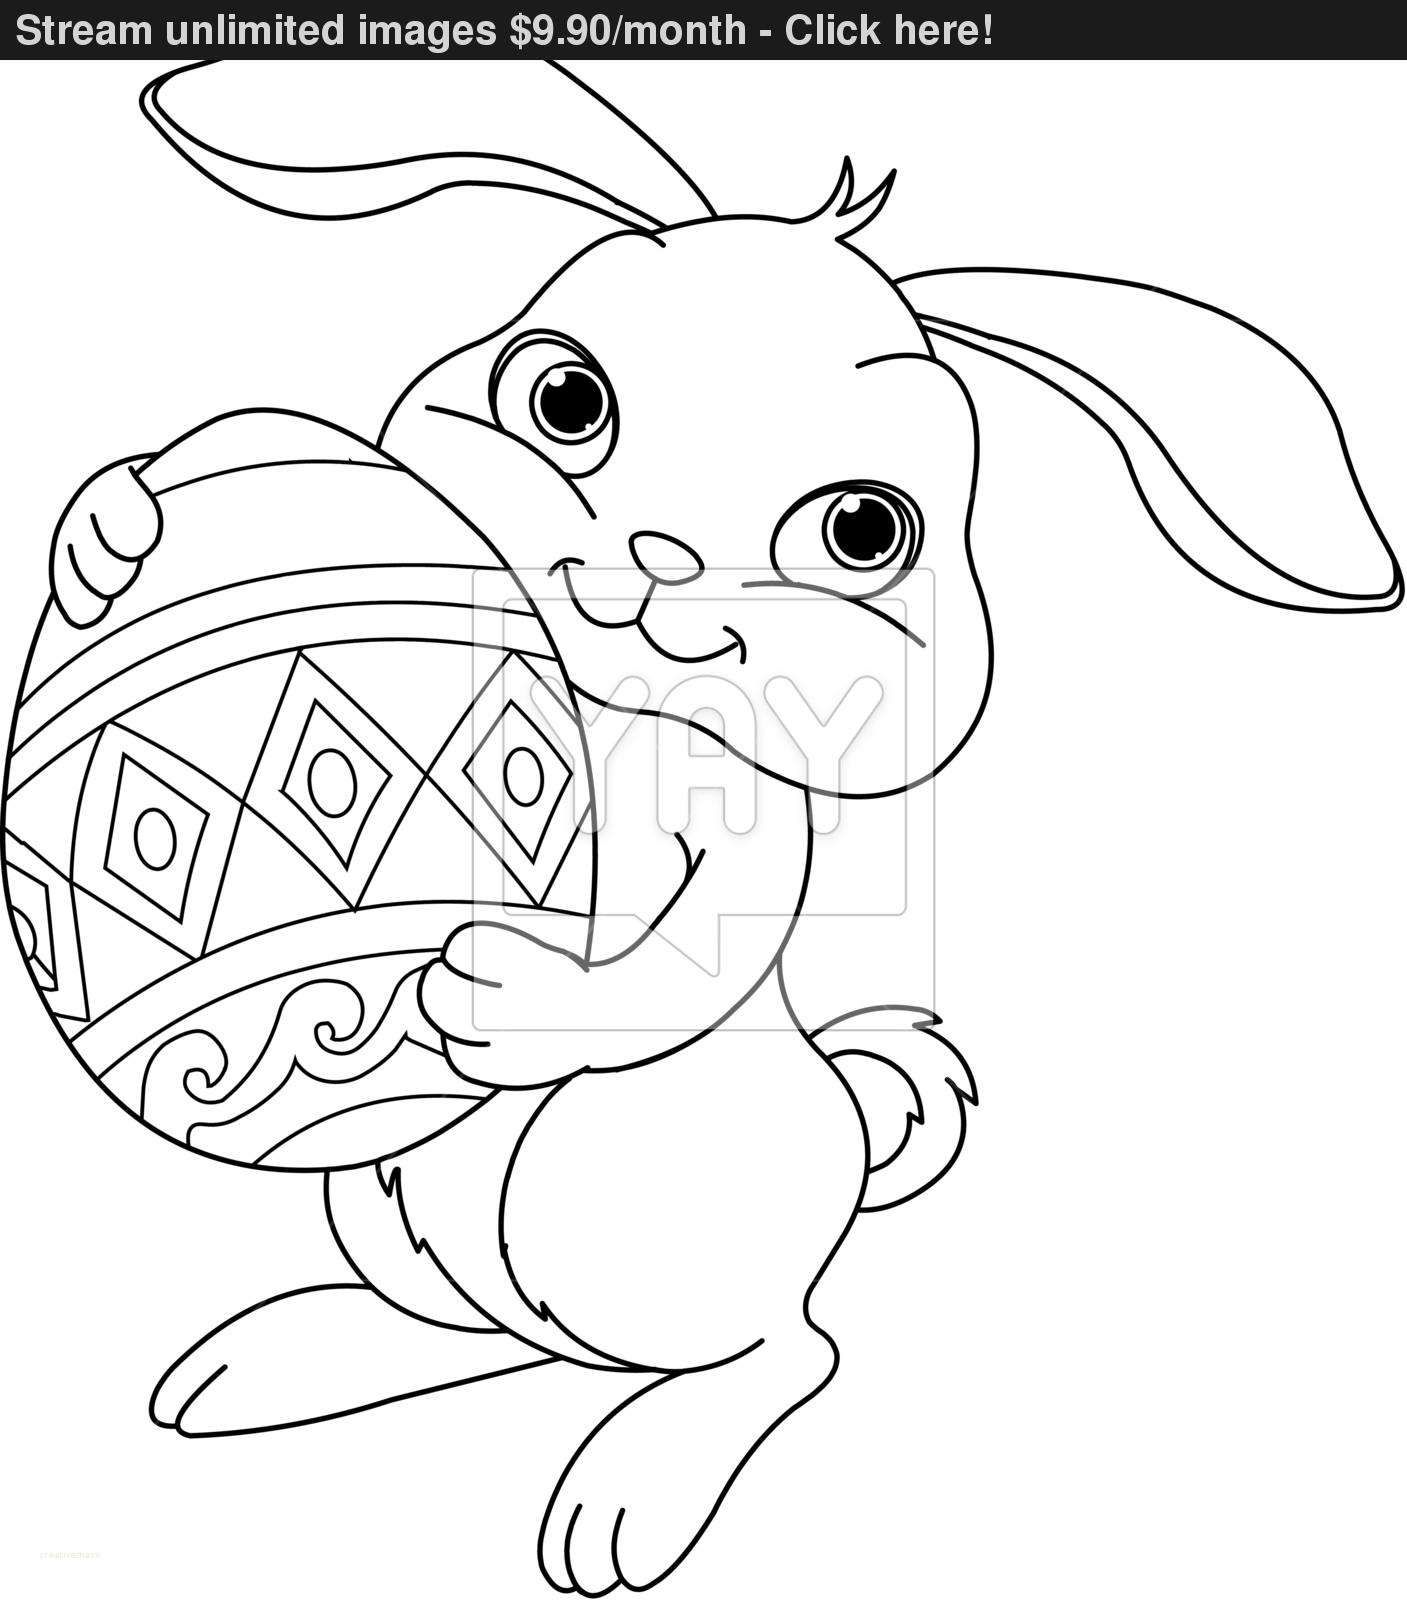 Unique Easy Easter Bunny Drawing with 15+ Example Pictures ...